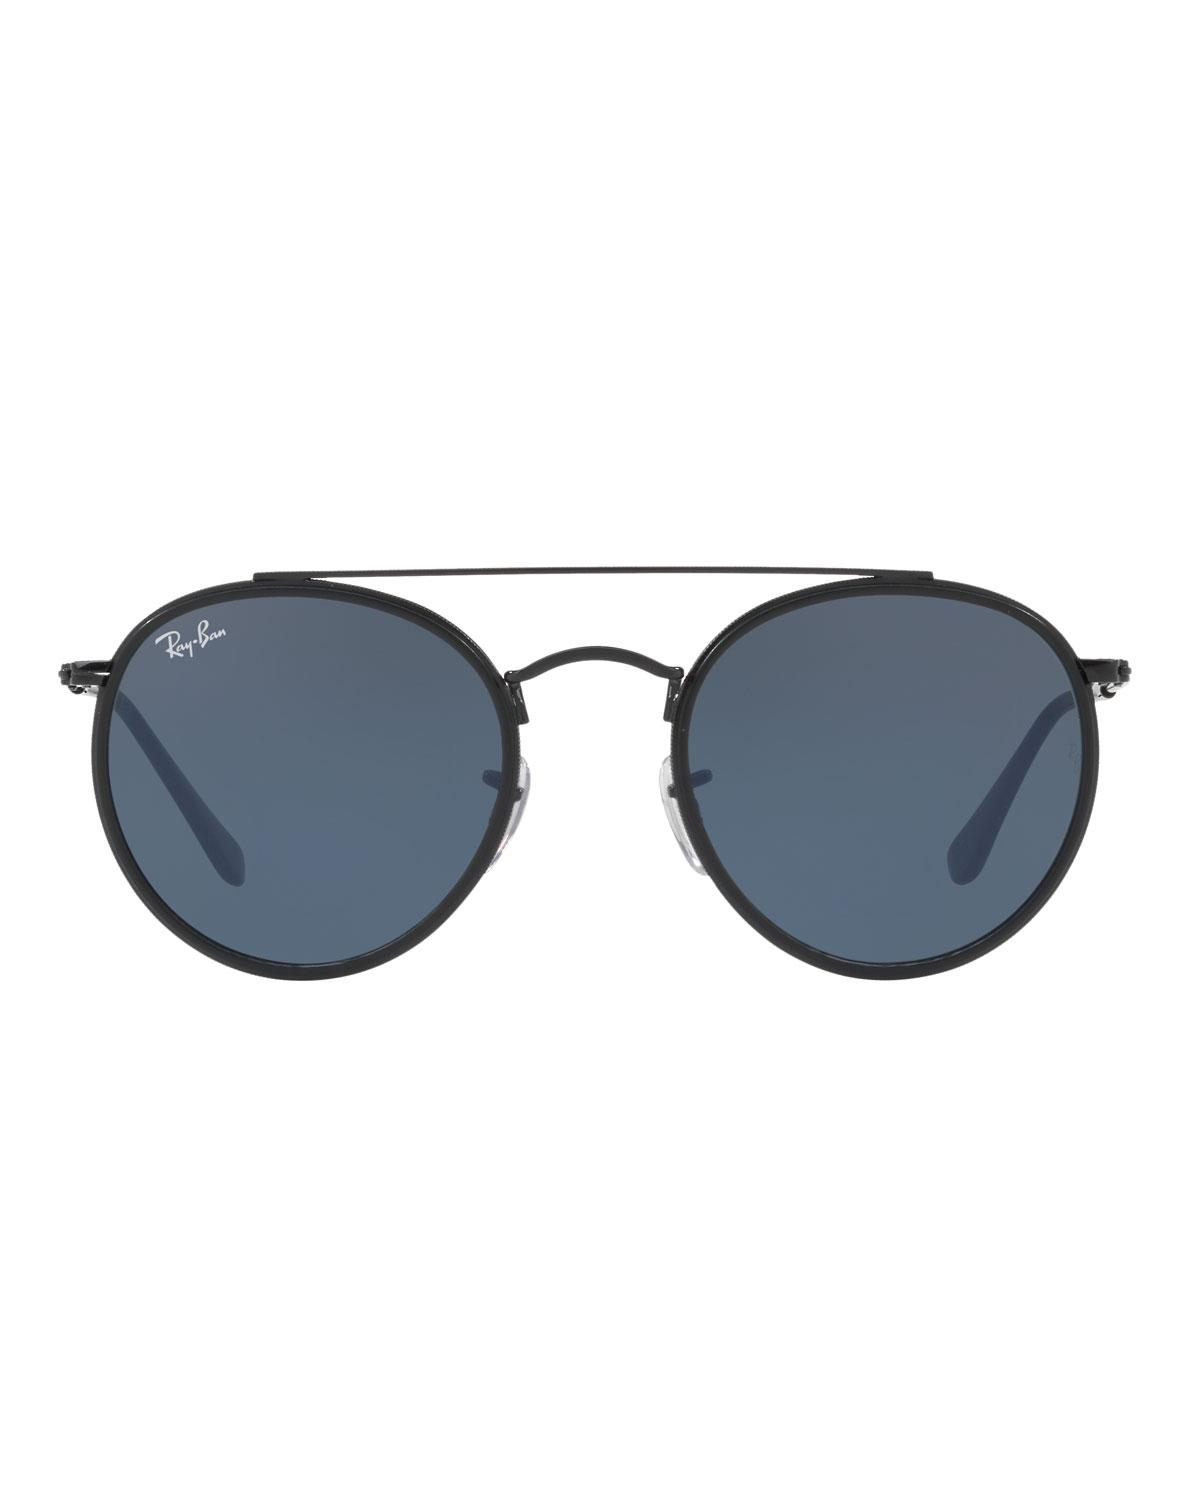 bad883bfc4 Lyst - Ray-Ban 3647n Round Sunglasses in Black